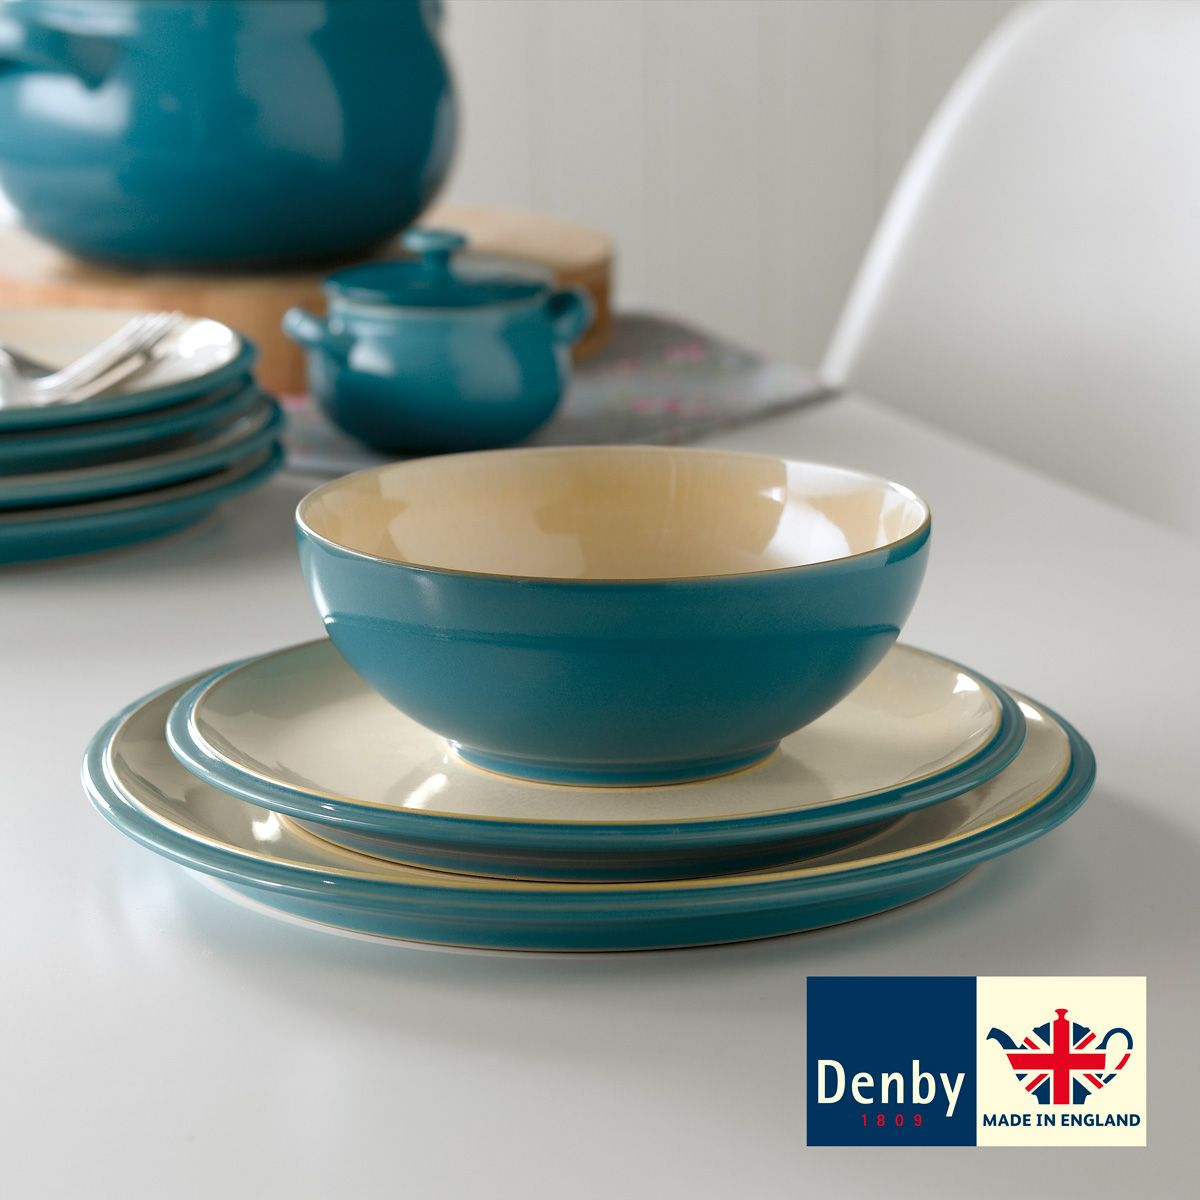 costco uk denby cook and dine turquoise 12 piece. Black Bedroom Furniture Sets. Home Design Ideas